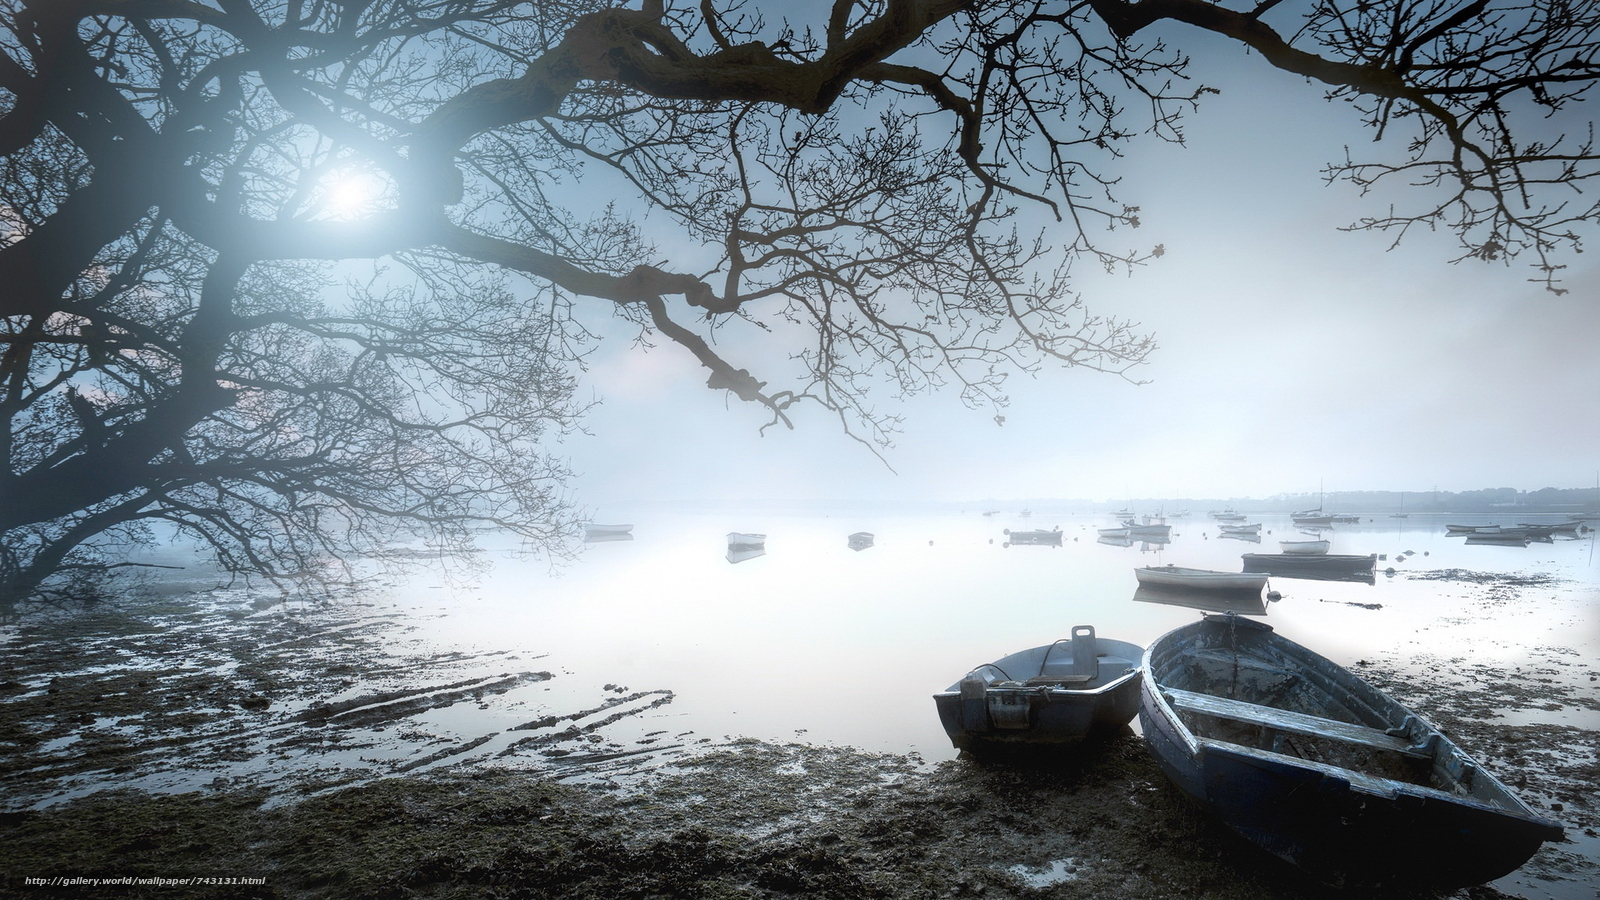 landscape, a boat, boats, water, nature, peace, relaxation, River, lake, dawn, fog, tree, branches, Coast, the sun